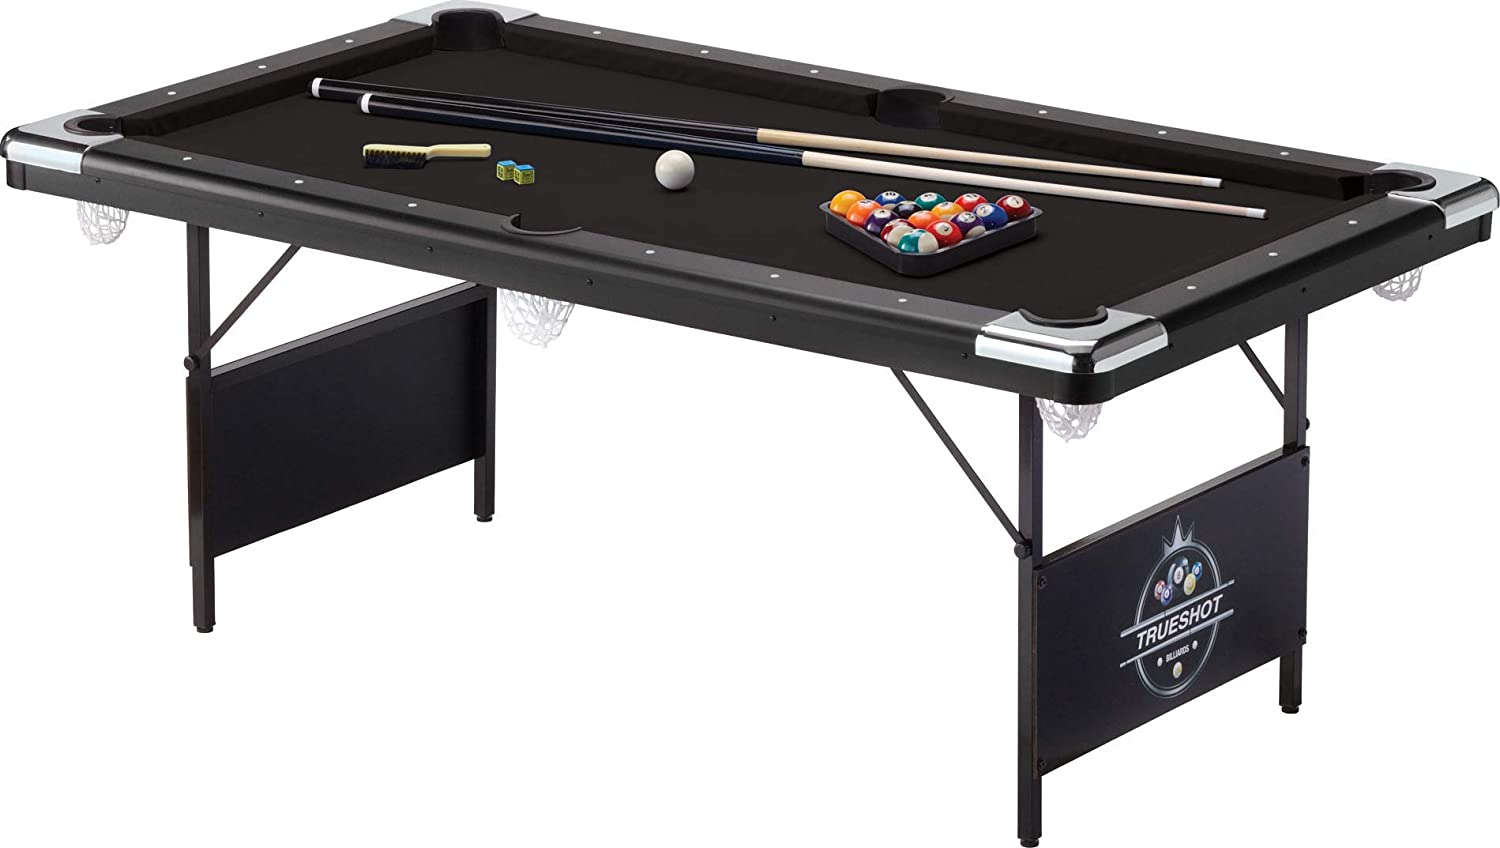 GLD Products Fat Cat Trueshot 6 Ft. Pool Table | Folding Legs for Storage | 64-6035 model